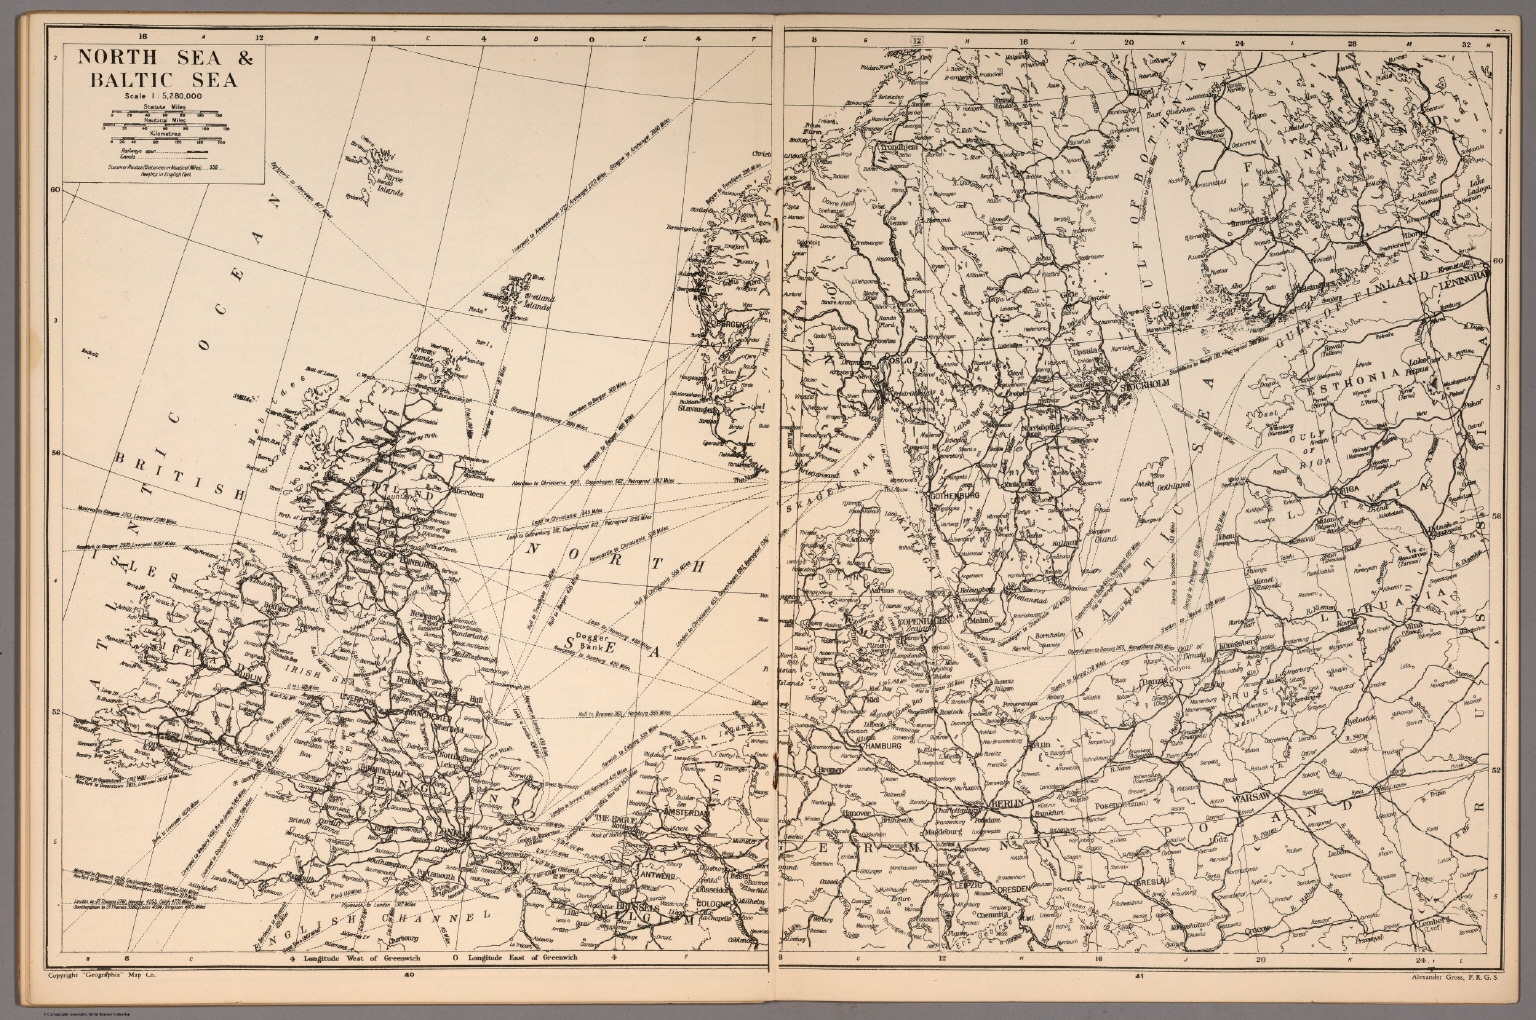 North Sea and Baltic Sea - David Rumsey Historical Map Collection